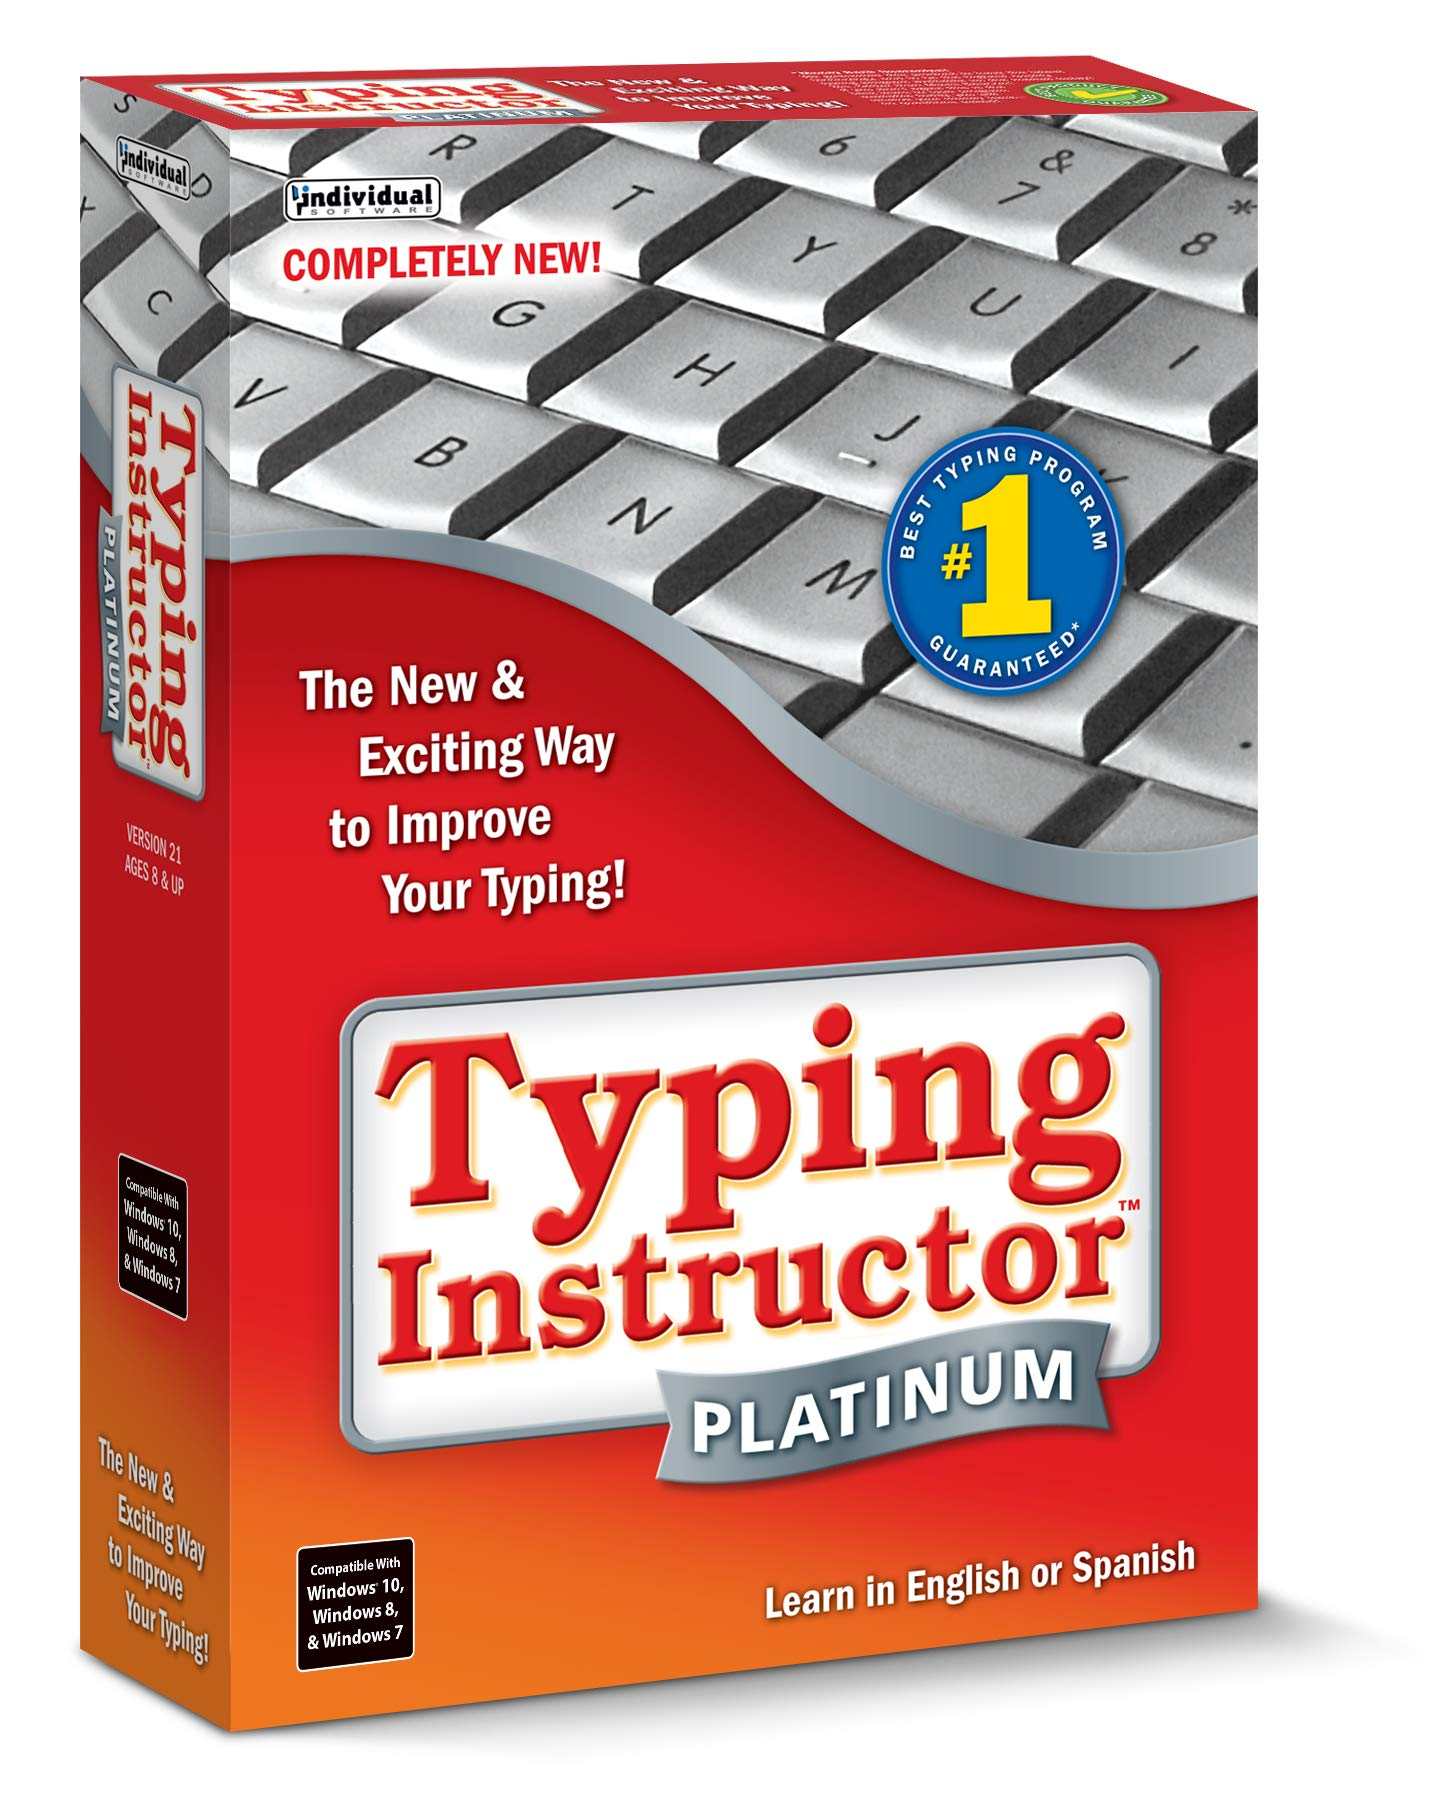 Typing Instructor Platinum 21 by Individual Software